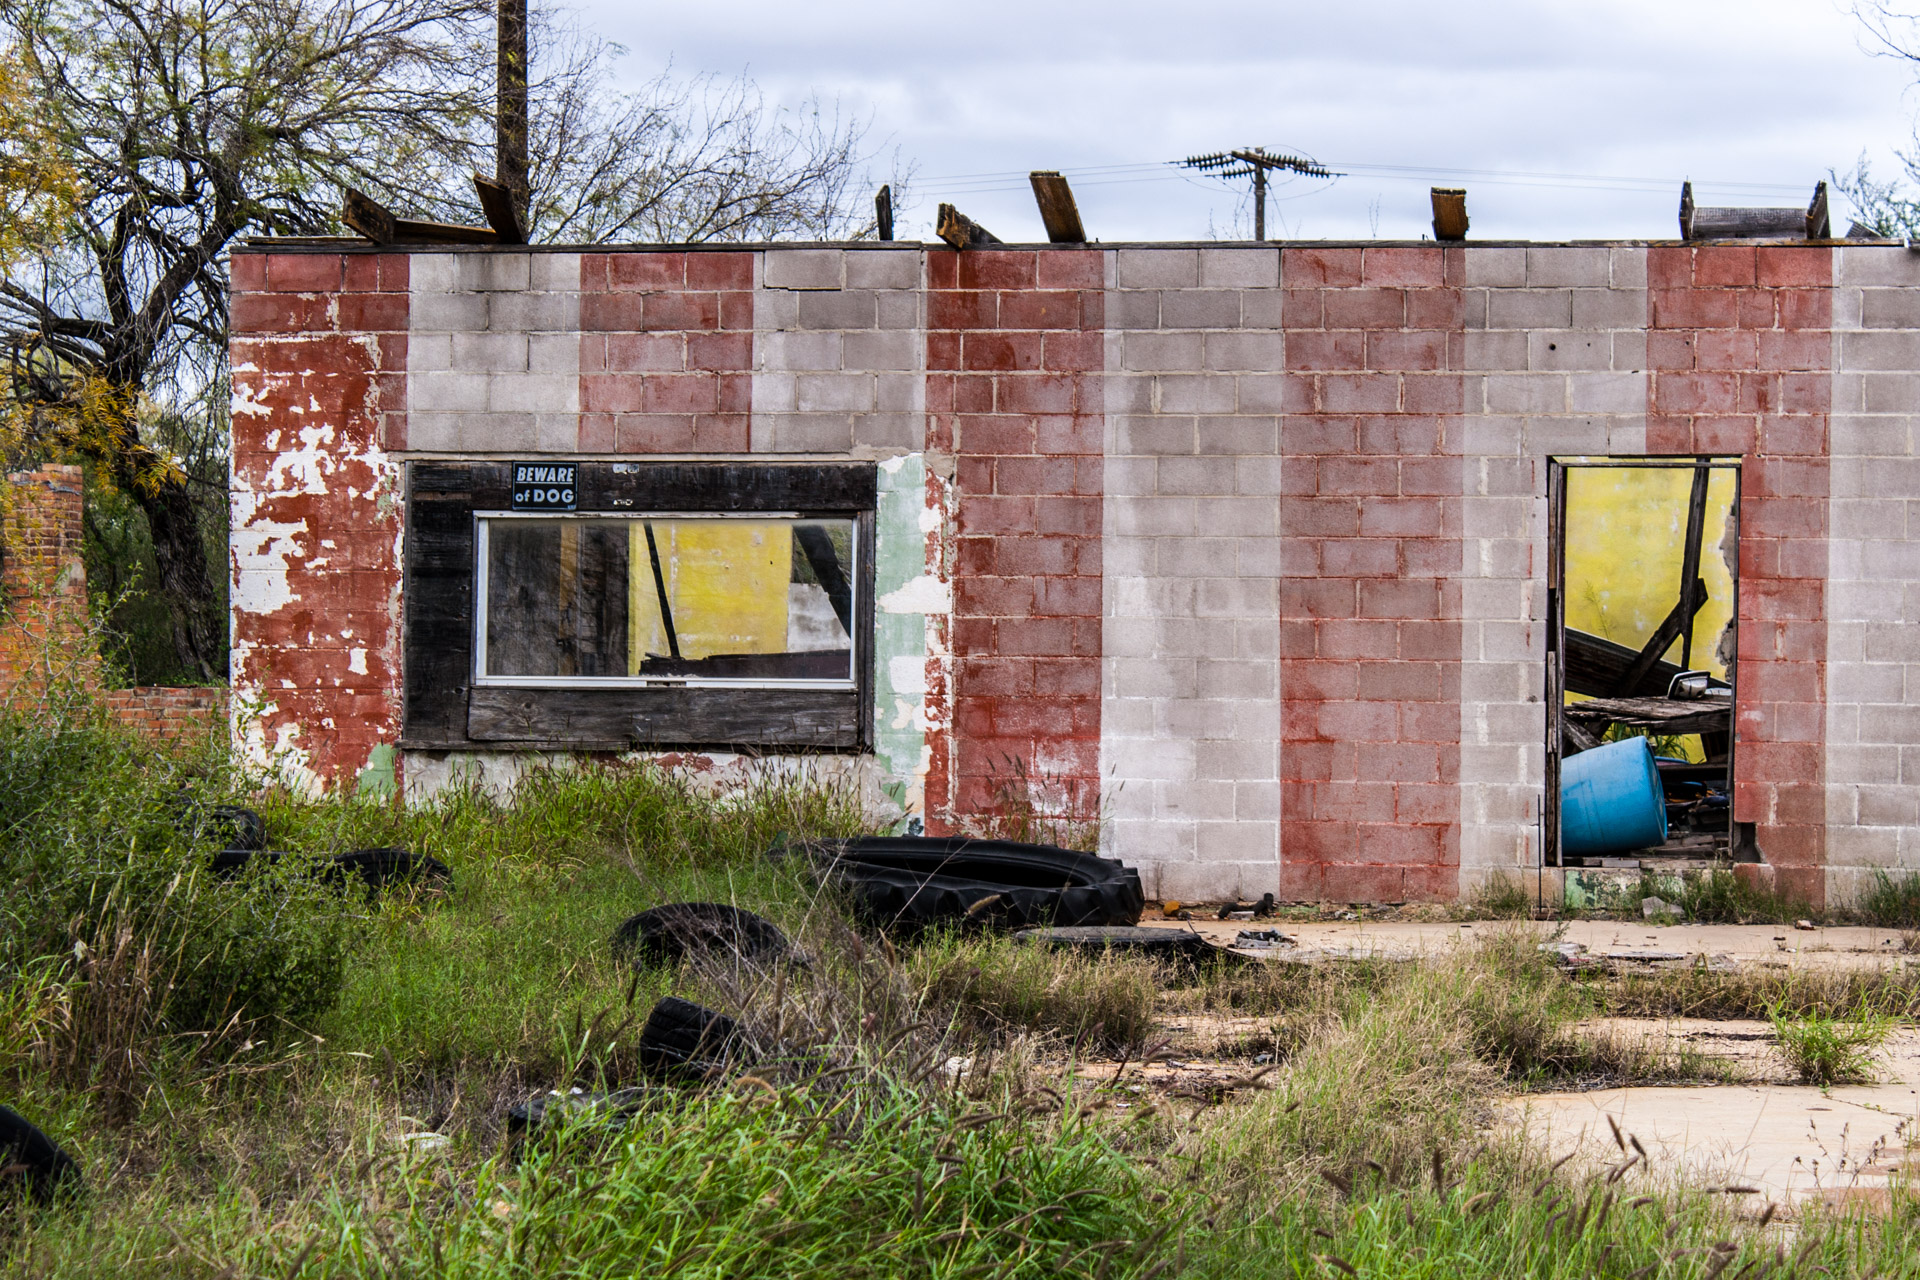 Pearsall, Texas - A Ruin, A Trailer, And Some Tires (ruin left)